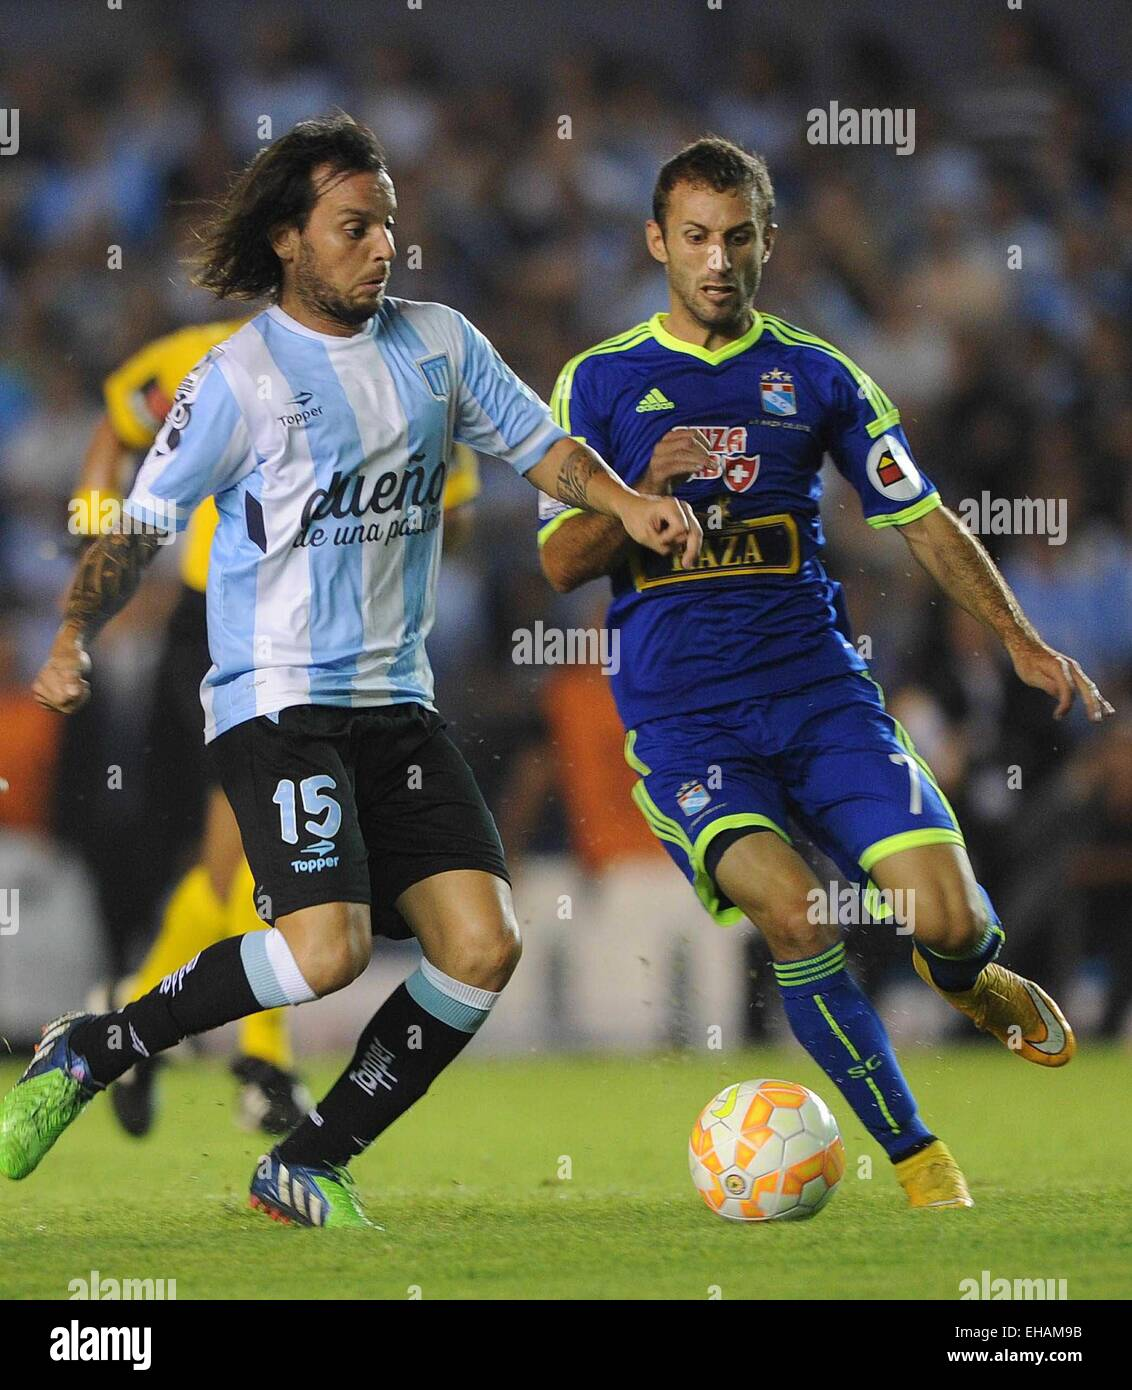 Buenos Aires, Argentina. 10th Mar, 2015. Racing Club's Ezequiel Videla (L) of Argentina vies for the ball with - Stock Image